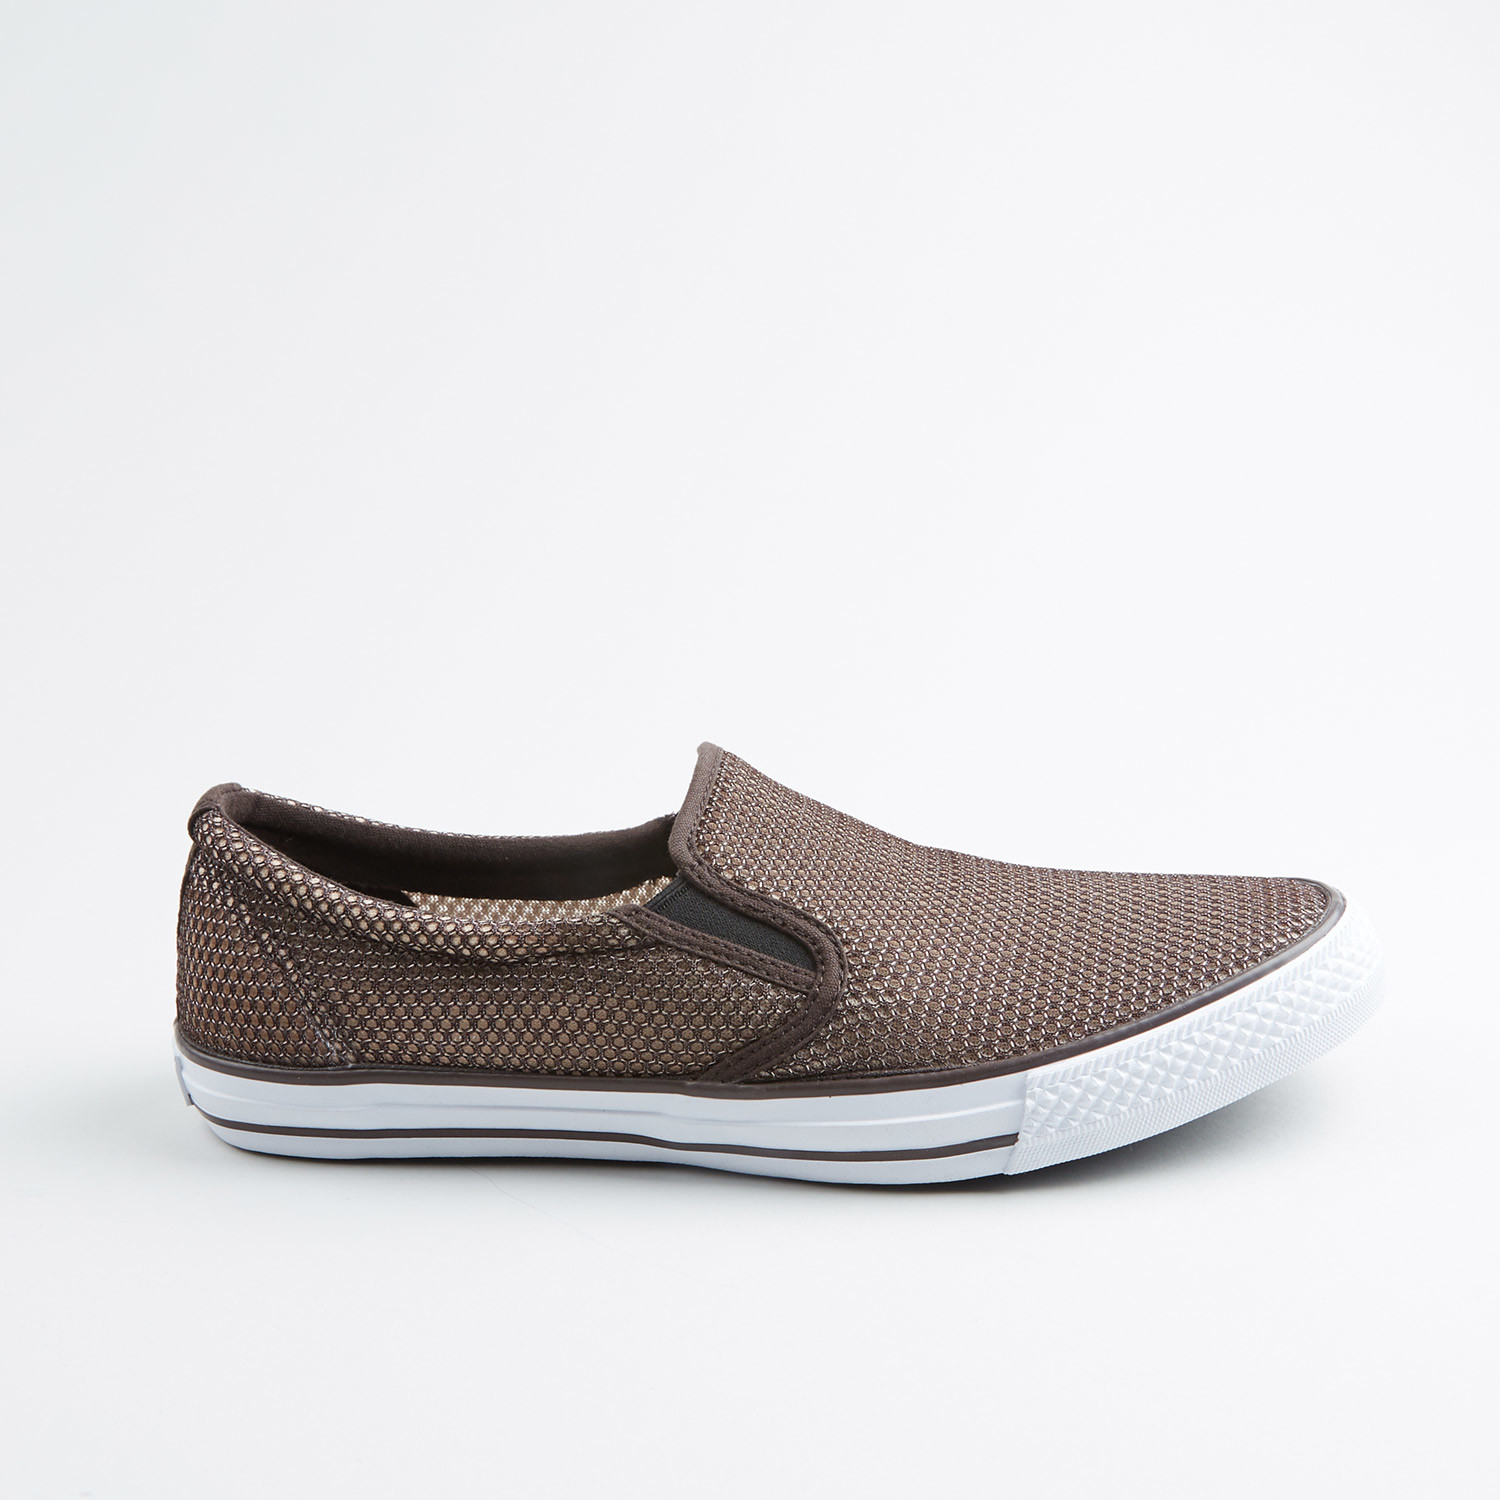 a4a9760f1a10a Skid ll Sneaker // Chocolate (Euro: 40) - Burnetie - Touch of Modern